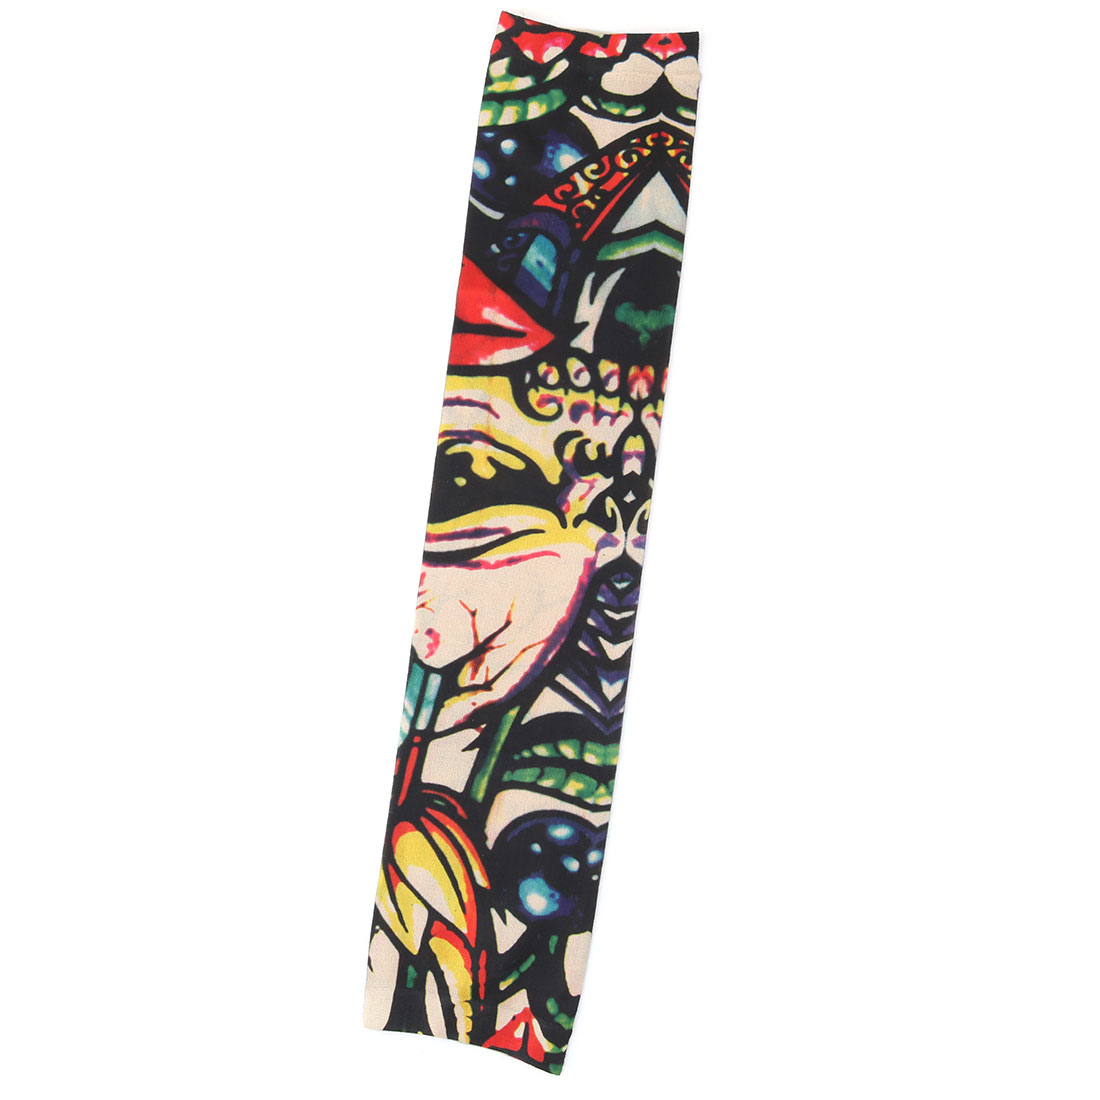 Outdoor Nylon Flower Print Stretchy Hiking Cleaning Arm Cover Sun Protection Sleeve